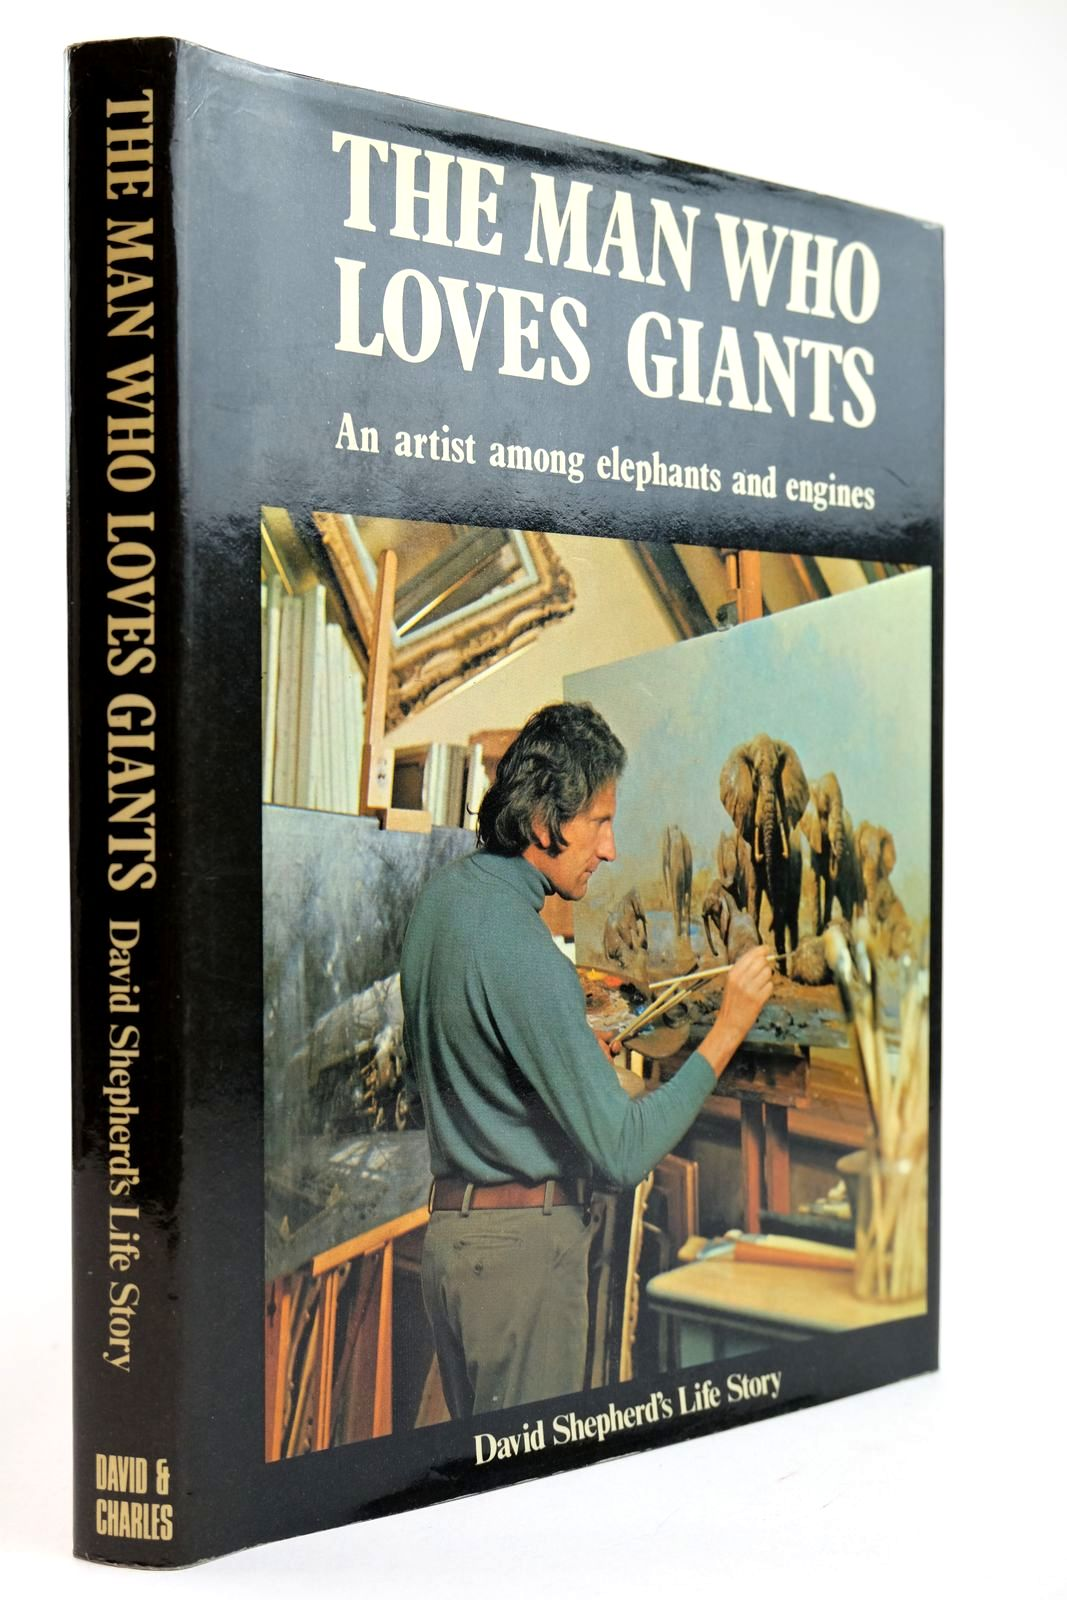 Photo of THE MAN WHO LOVES GIANTS written by Shepherd, David illustrated by Shepherd, David published by David & Charles (STOCK CODE: 2132145)  for sale by Stella & Rose's Books